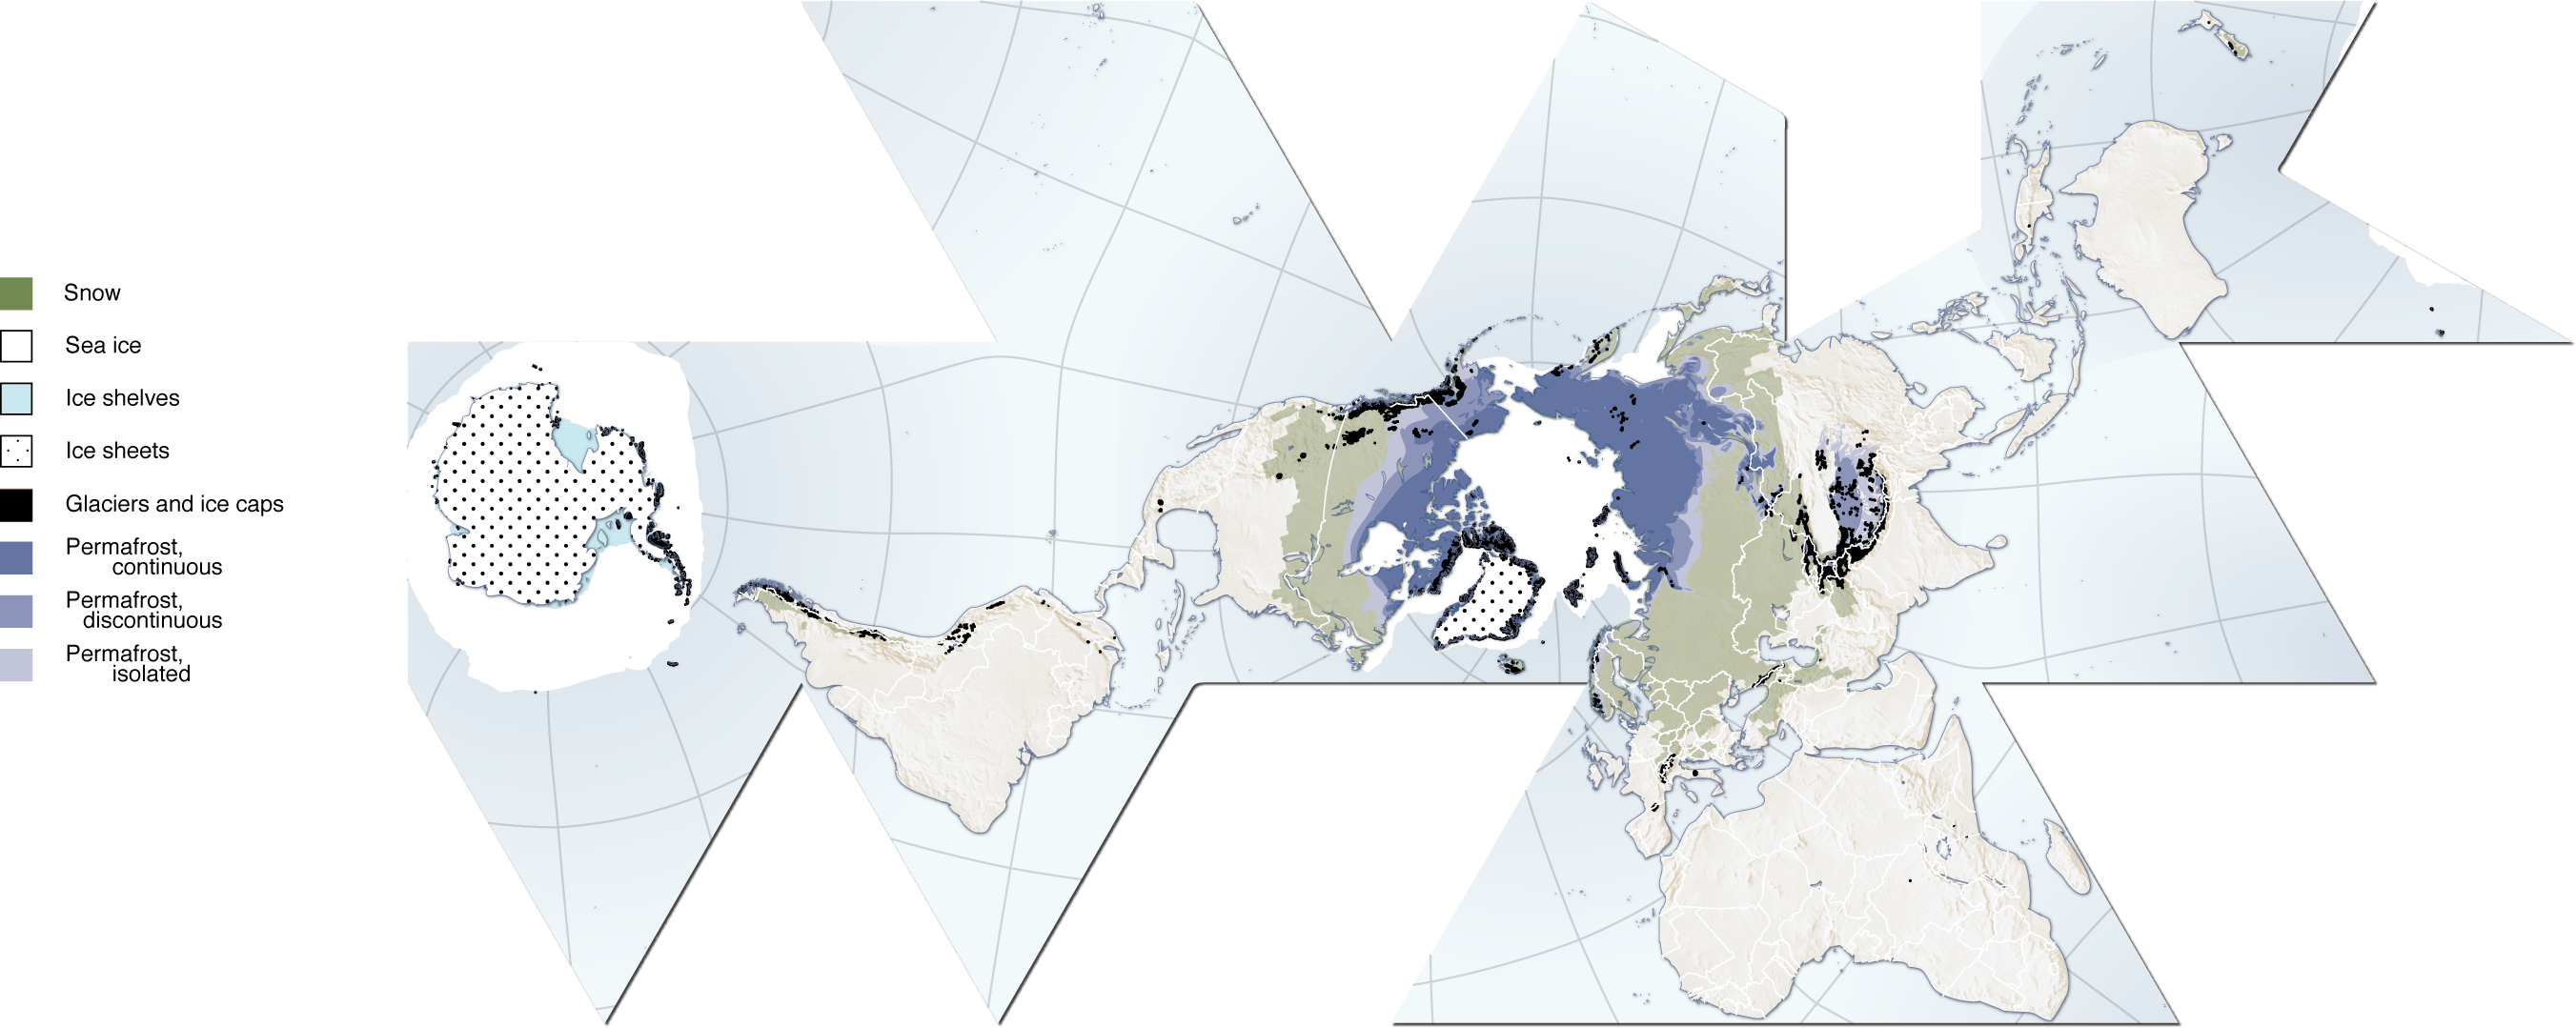 map of cryosphere